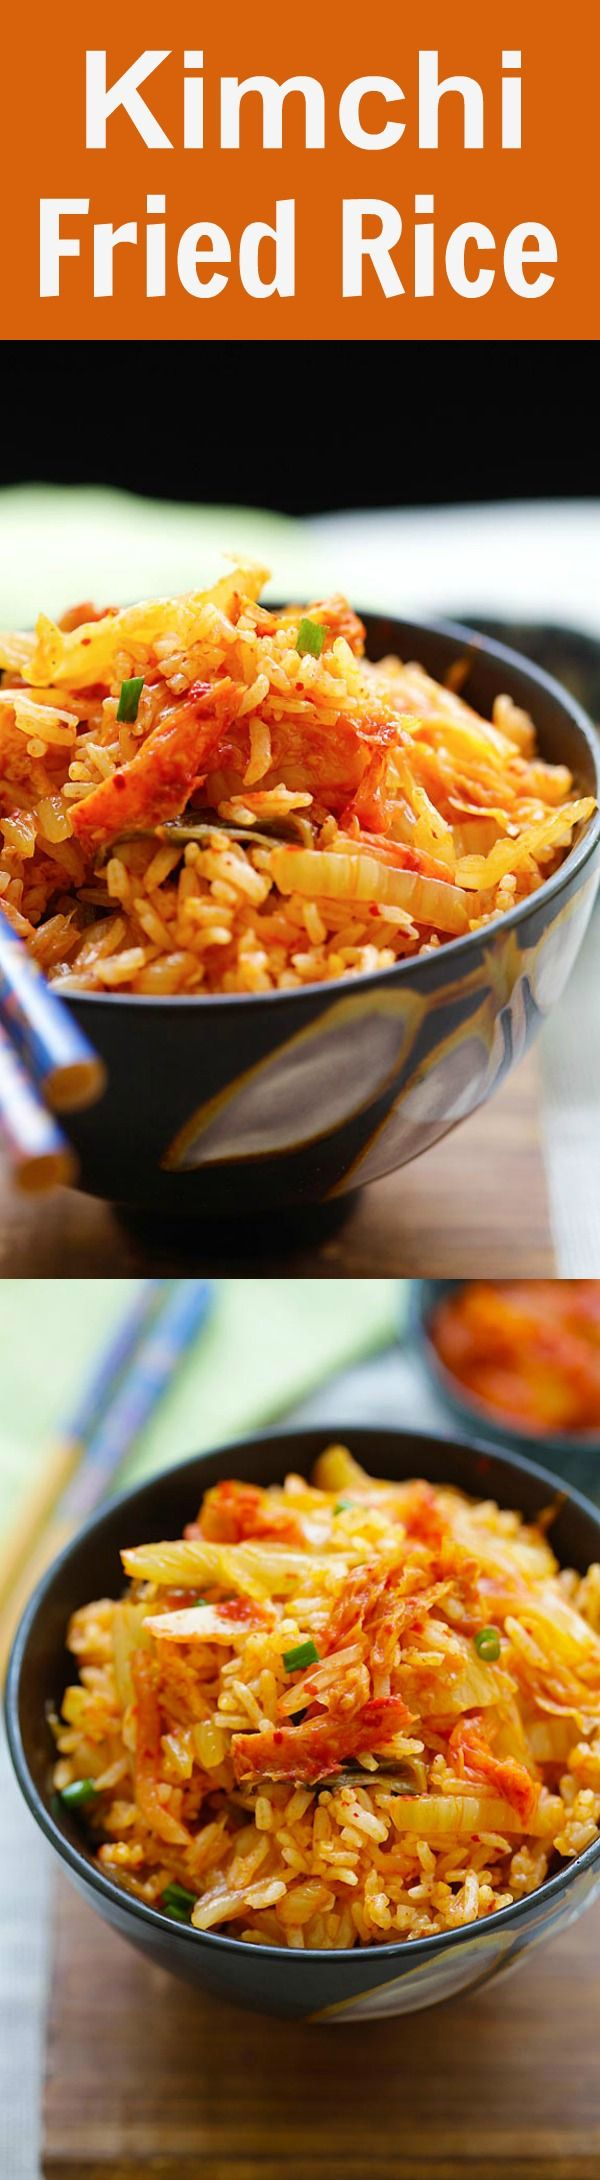 Kimchi Fried Rice – the easiest and best fried rice made with Korean kimchi. Spicy, flavorful and absolutely delicious. Dinner takes 15 mins | rasamalaysia.com